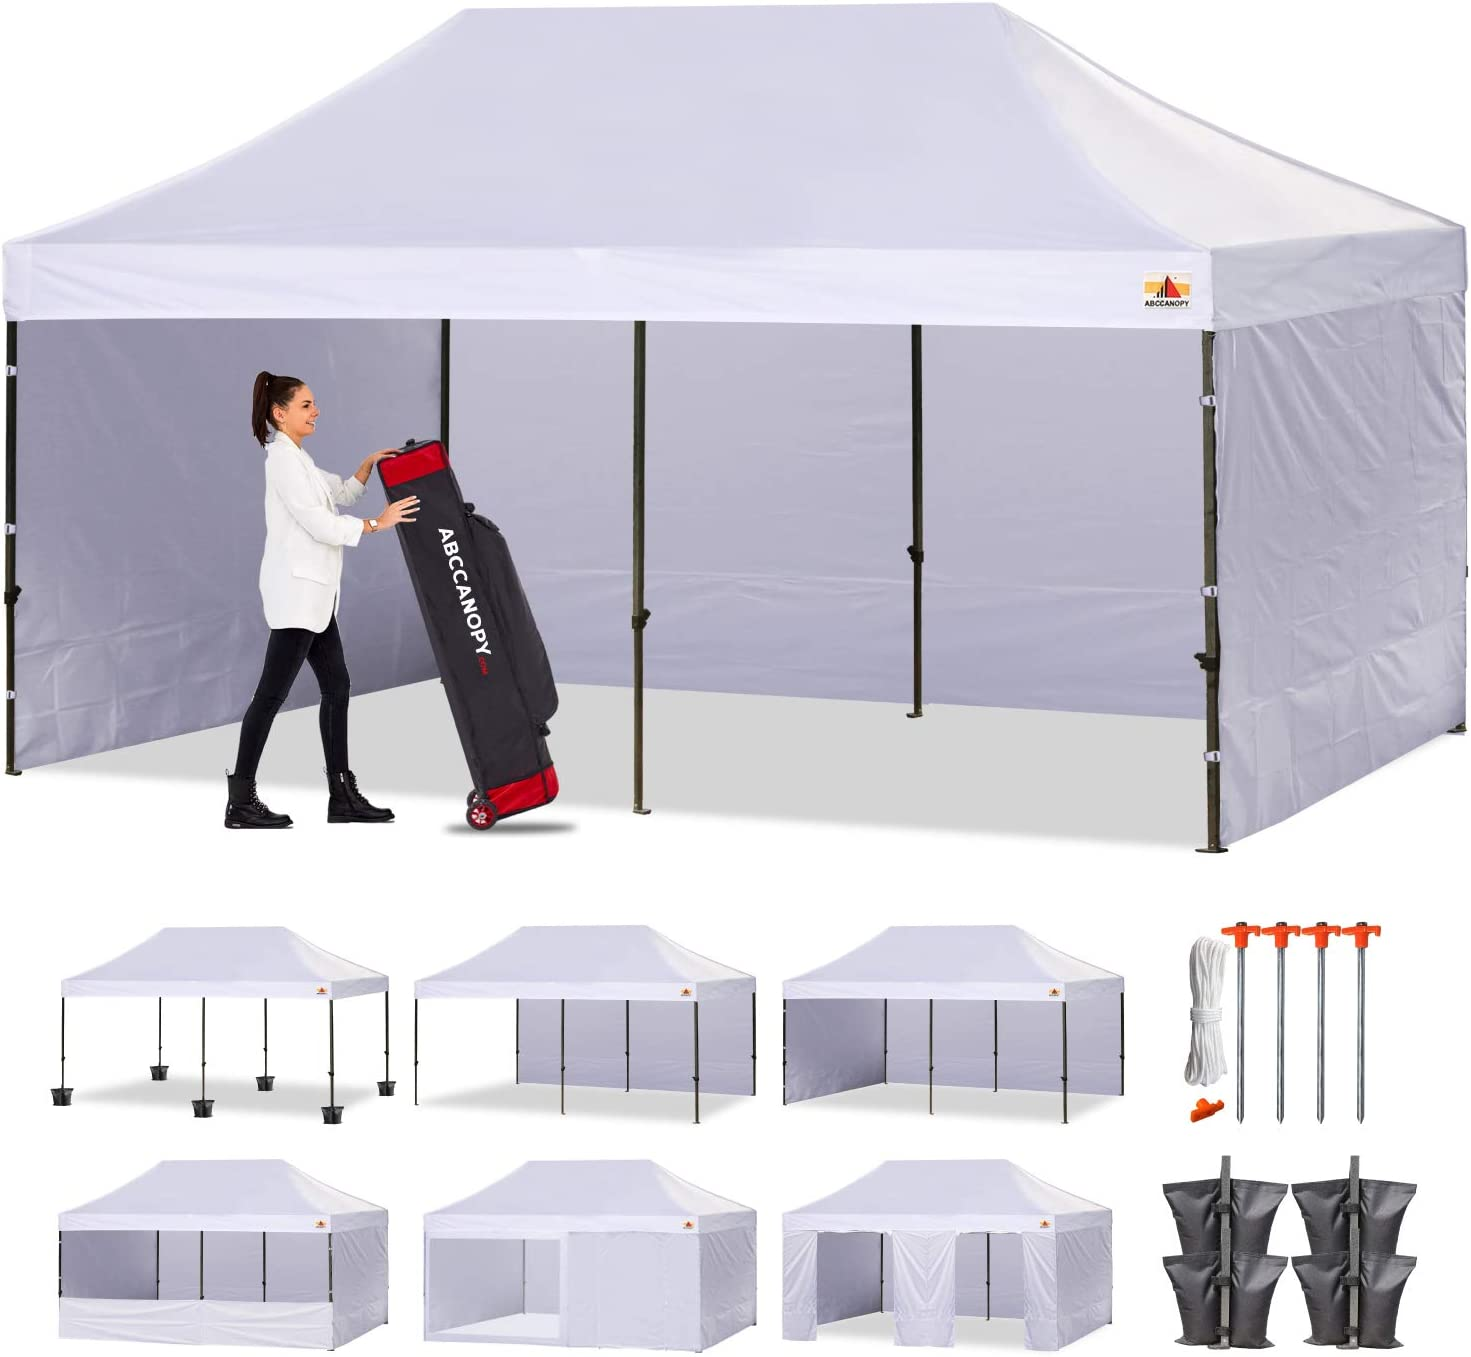 ABCCANOPY Canopy Tent Popup Canopy 10x20 Pop Up Canopies Commercial Tents Market stall with 6 Removable Sidewalls and Roller Bag Bonus 4 Weight Bags and 10ft Screen Netting and Half Wall, White